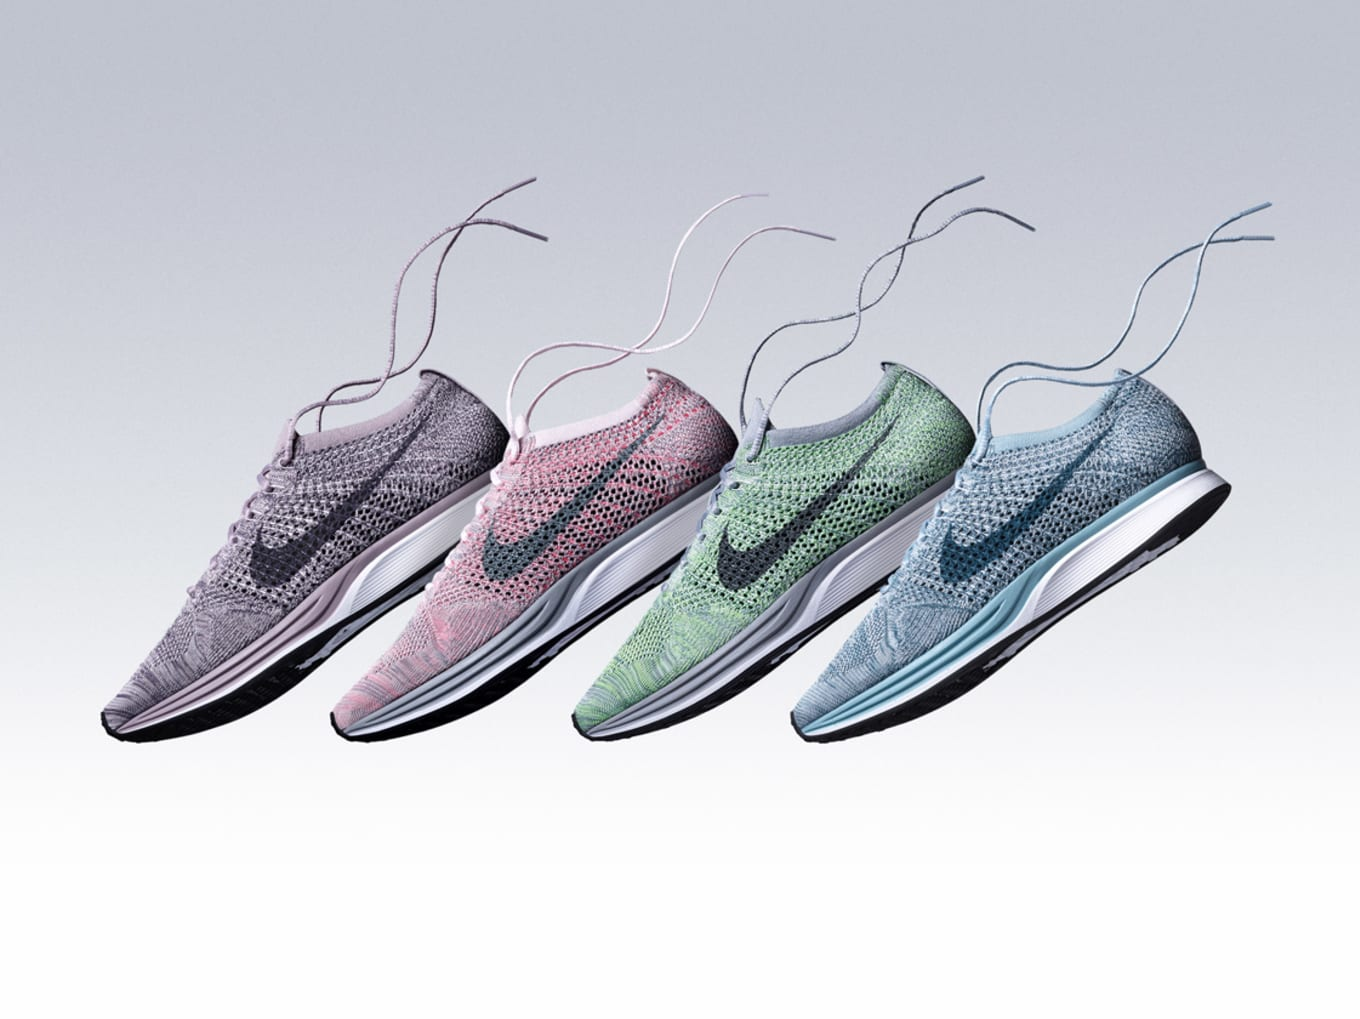 a7e082f30a483 Nike Flyknit Racer. Image via Nike. Following the recent release ...